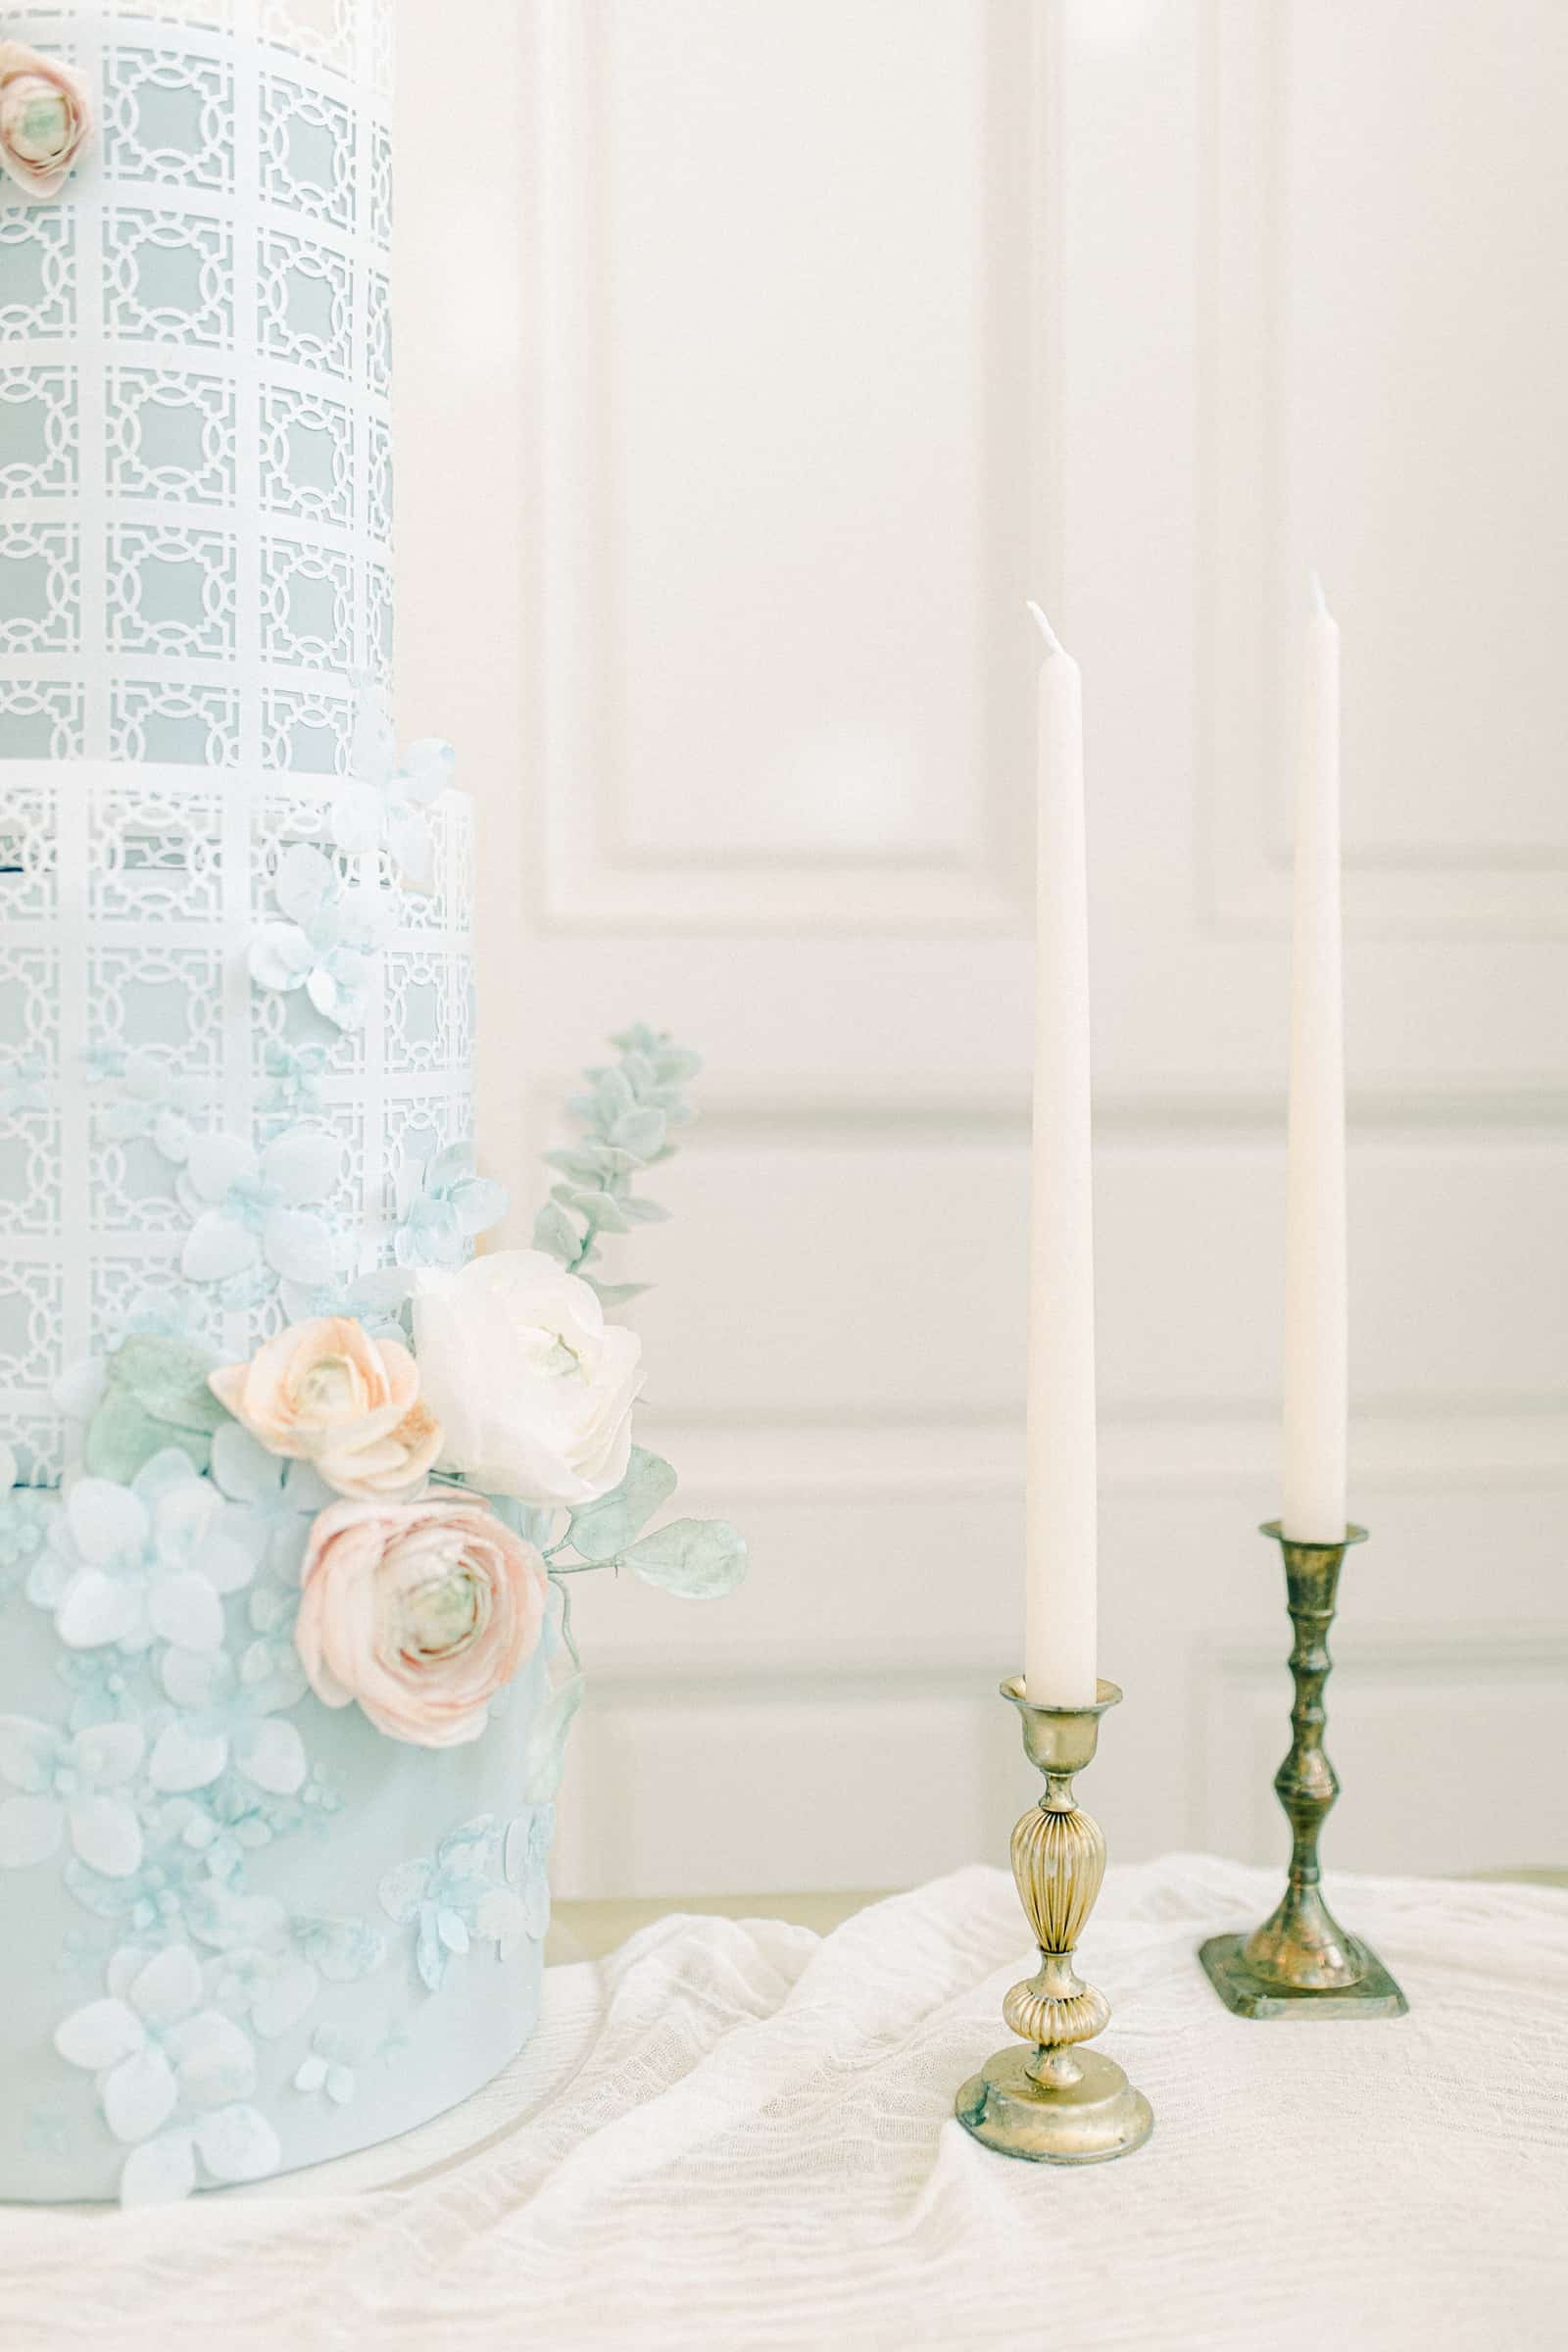 Light blue wedding cake with pink and white sugar flowers with gold candlesticks